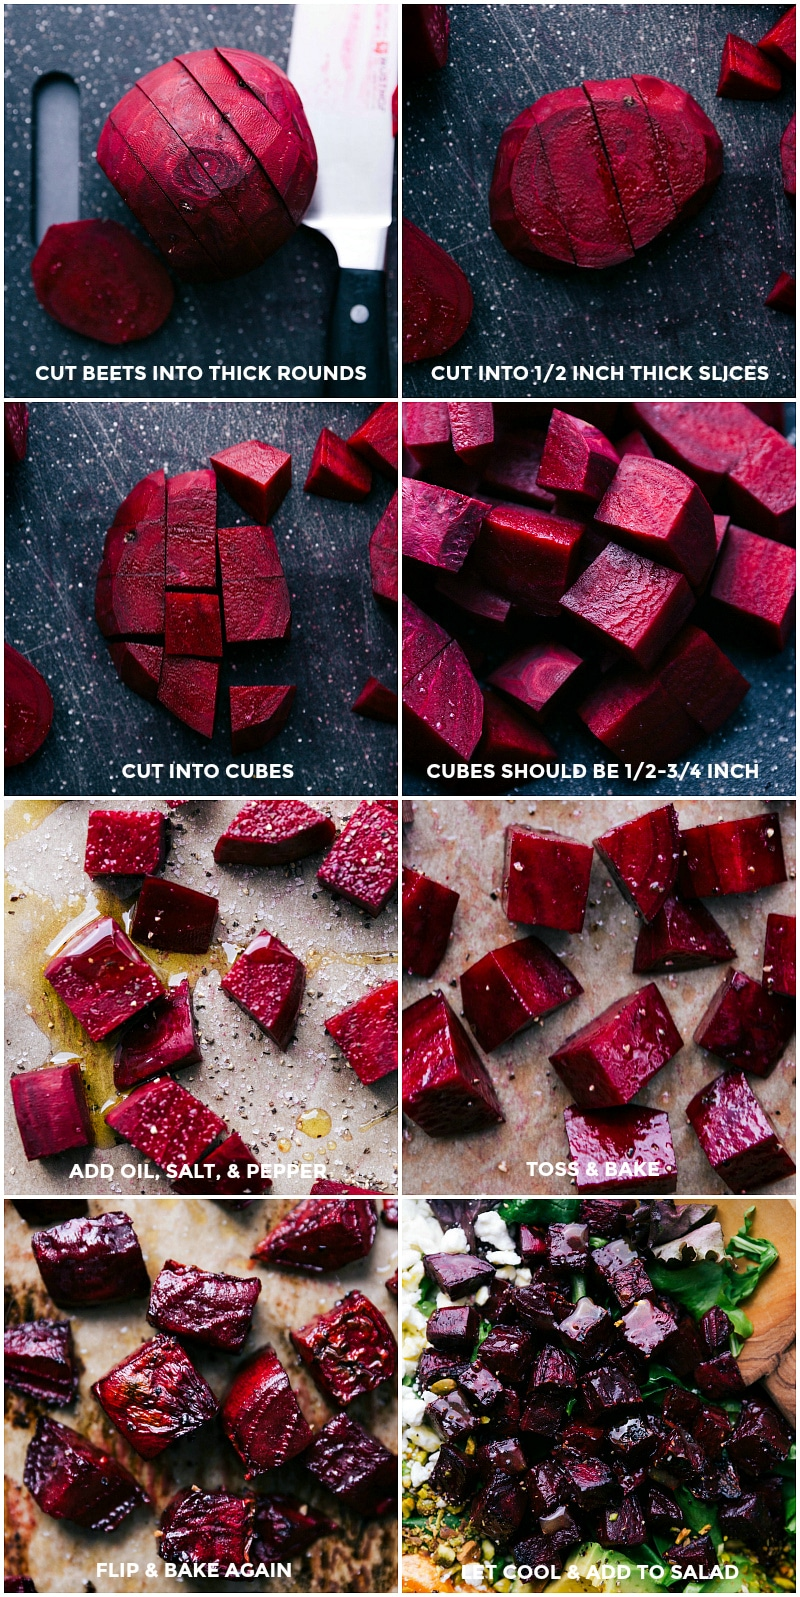 Process shots-- images of the beets in various stages of being cut up and roasted.